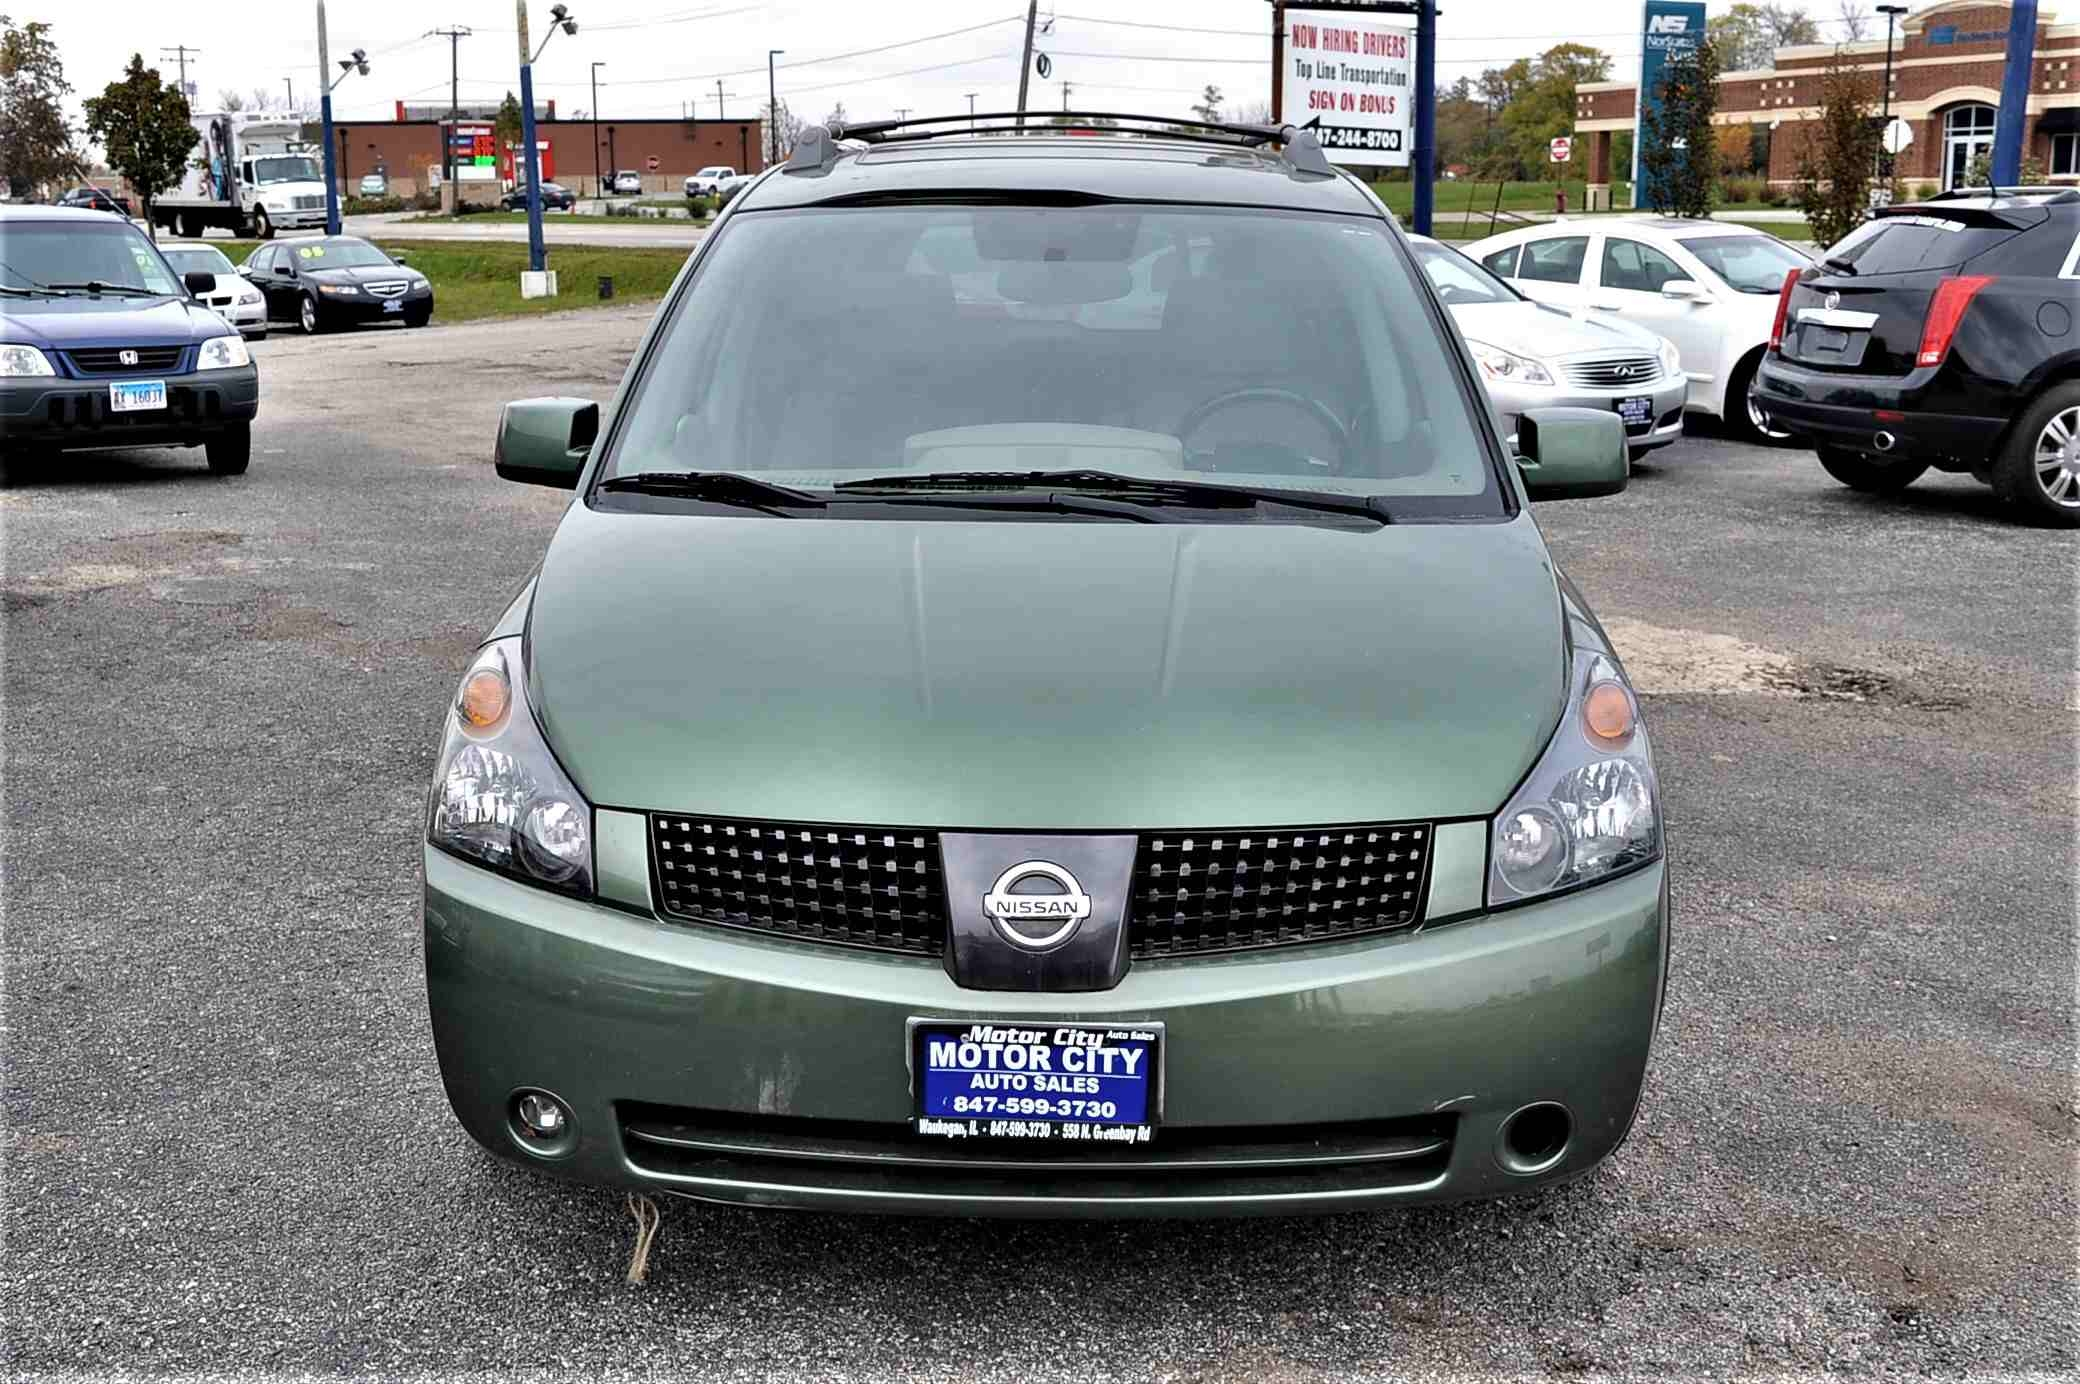 2004 Nissan Quest SE Green Used Minivan Sale Gurnee Kenosha Mchenry Chicago Illinois